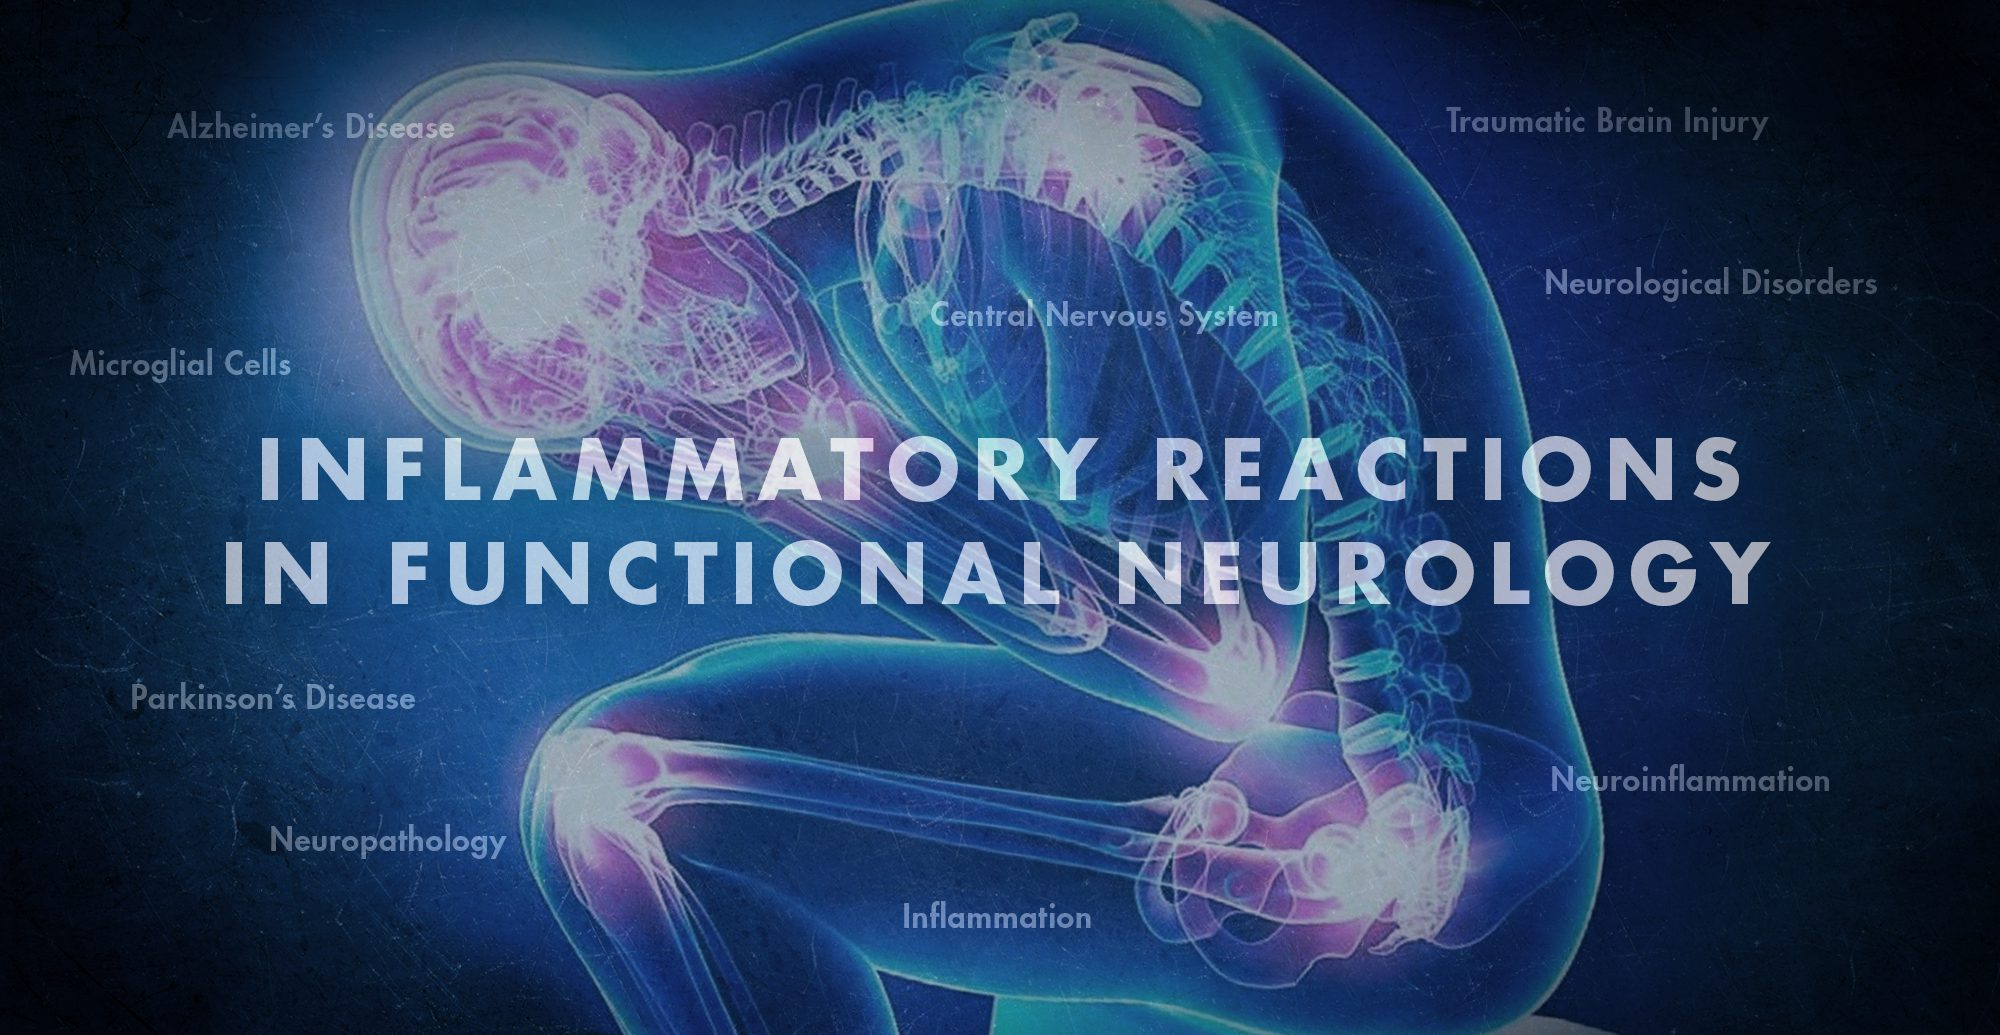 Inflammatory Reactions in Functional Neurology | El Paso, TX Chiropractor